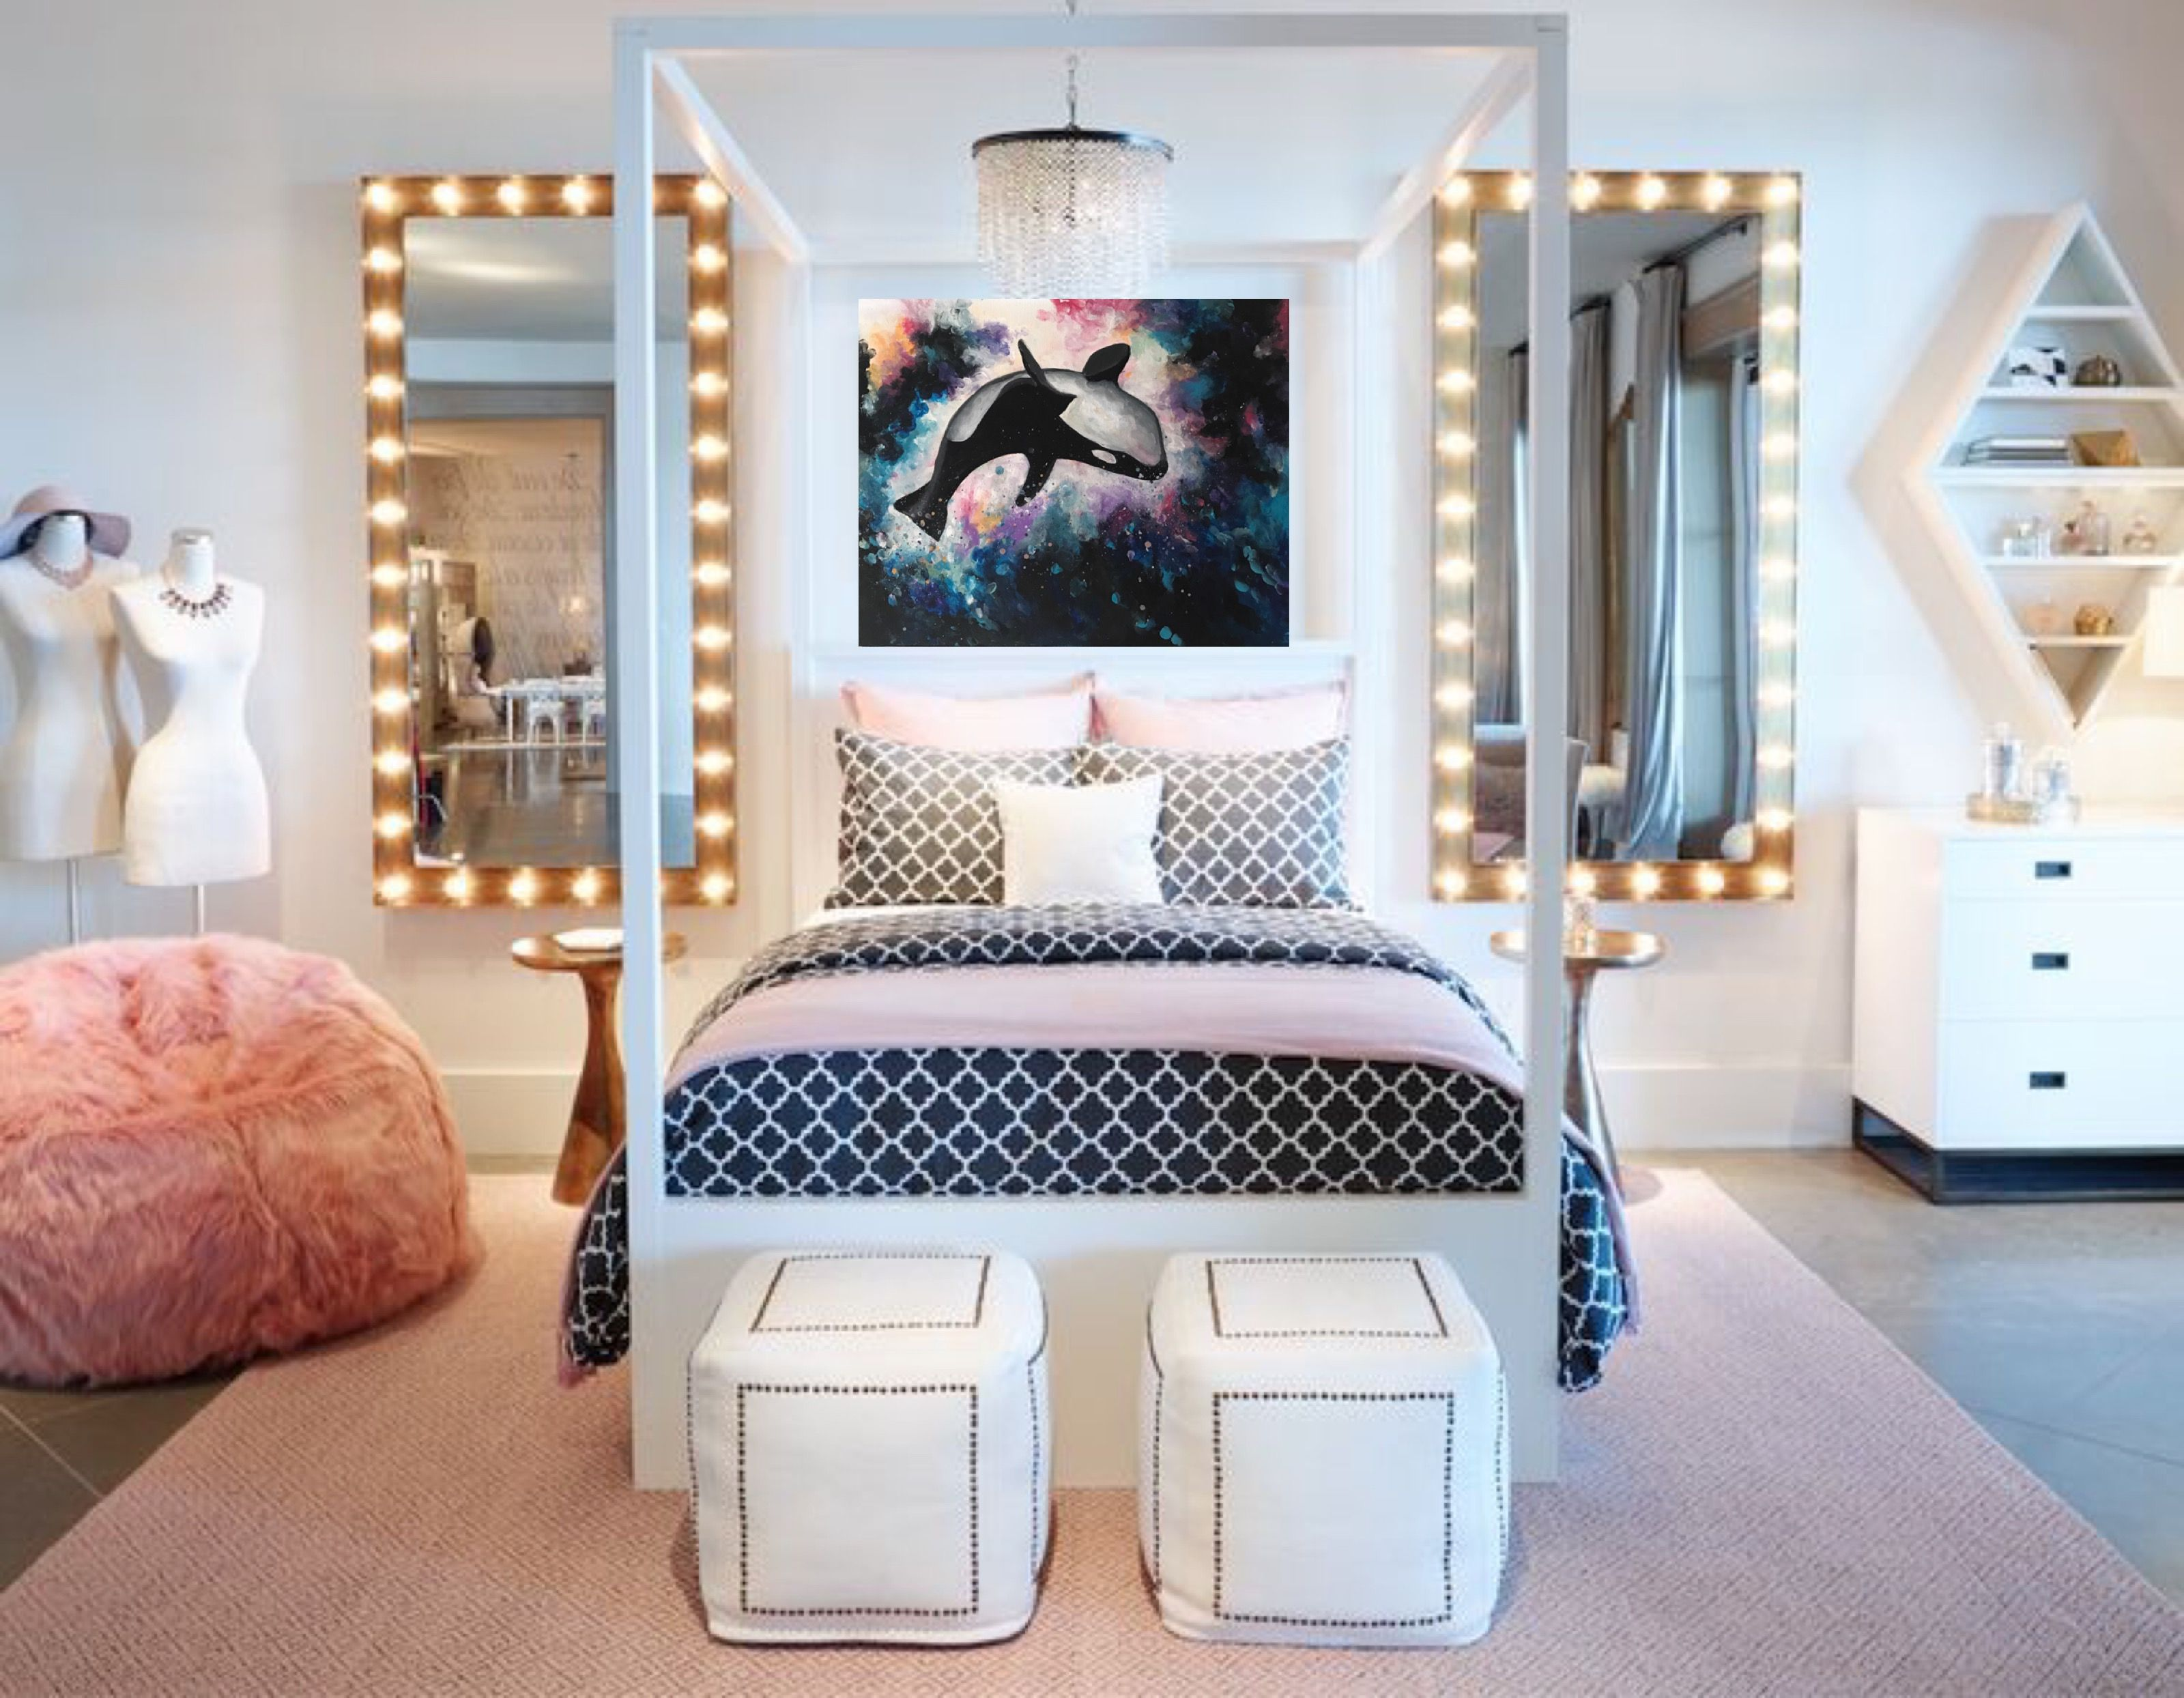 7 Inspiring Kid Room Color Options For Your Little Ones: Glam Bedroom, Glamorous Bedroom, Glam Art, Fashion Art